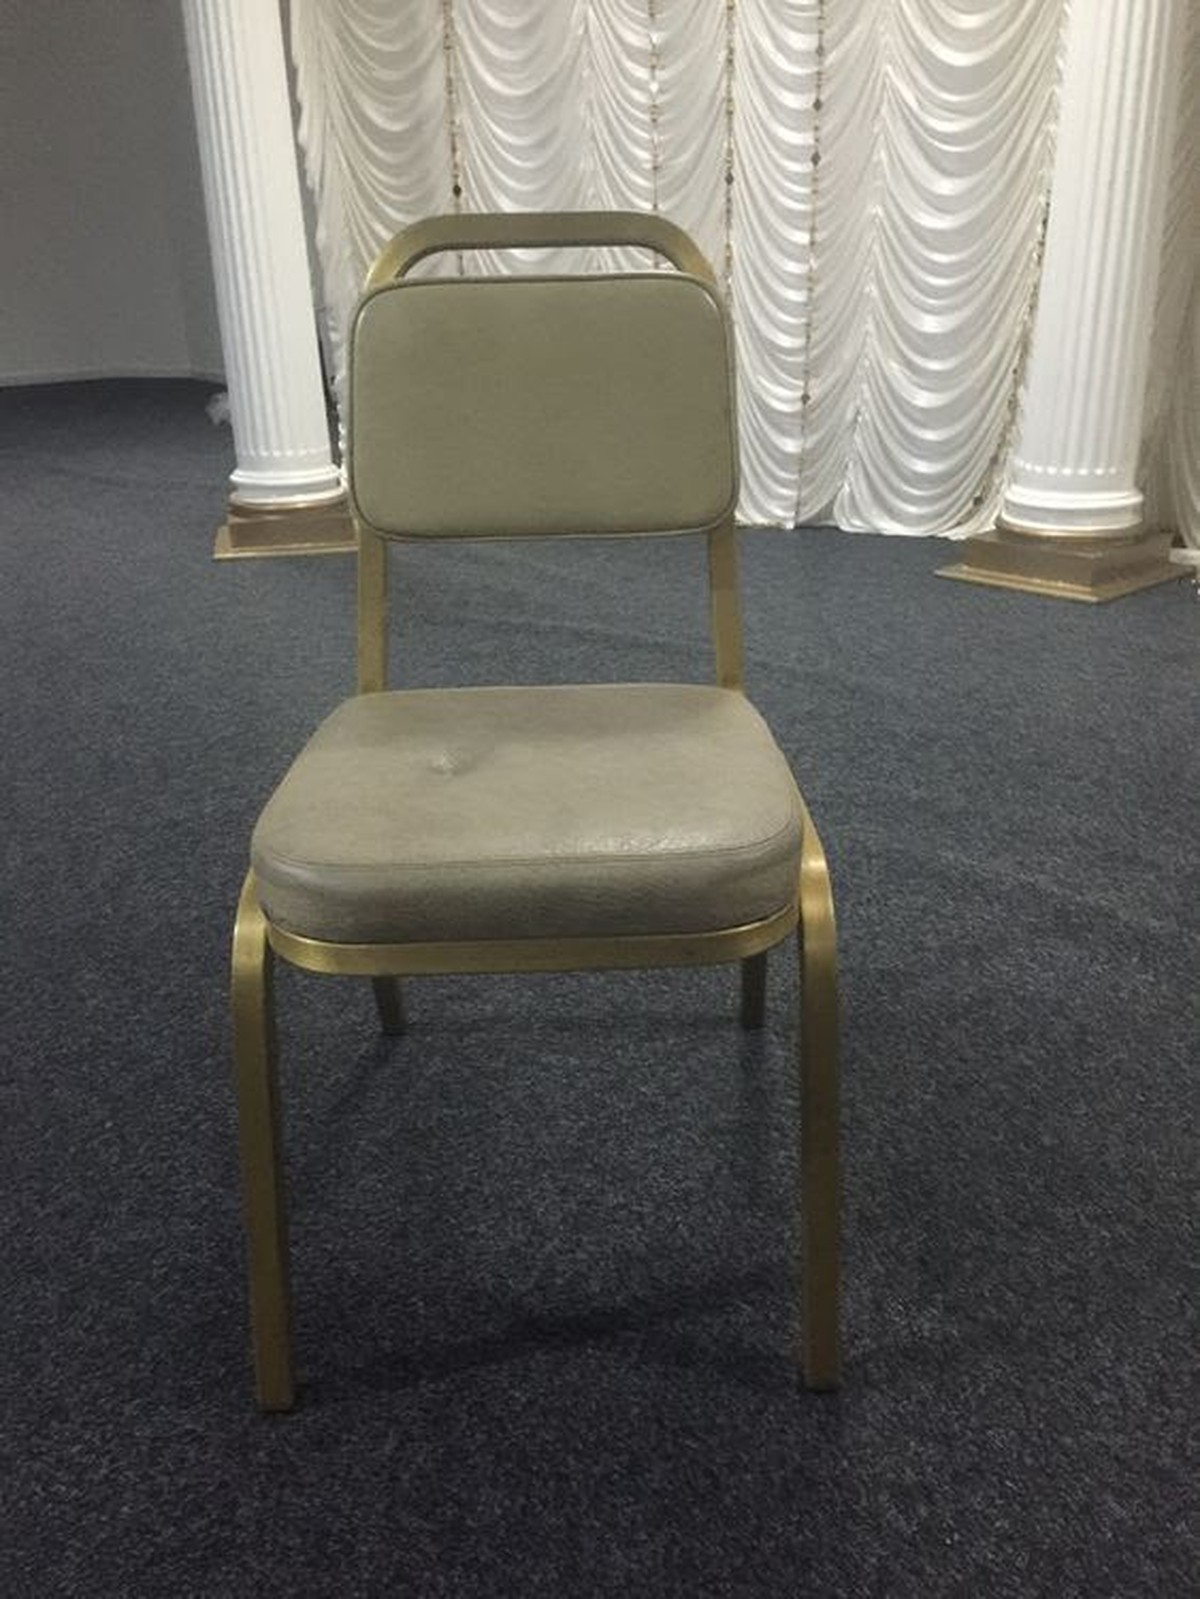 wedding chair covers east midlands cover hire teesside secondhand chairs and tables aluminium framed banqueting